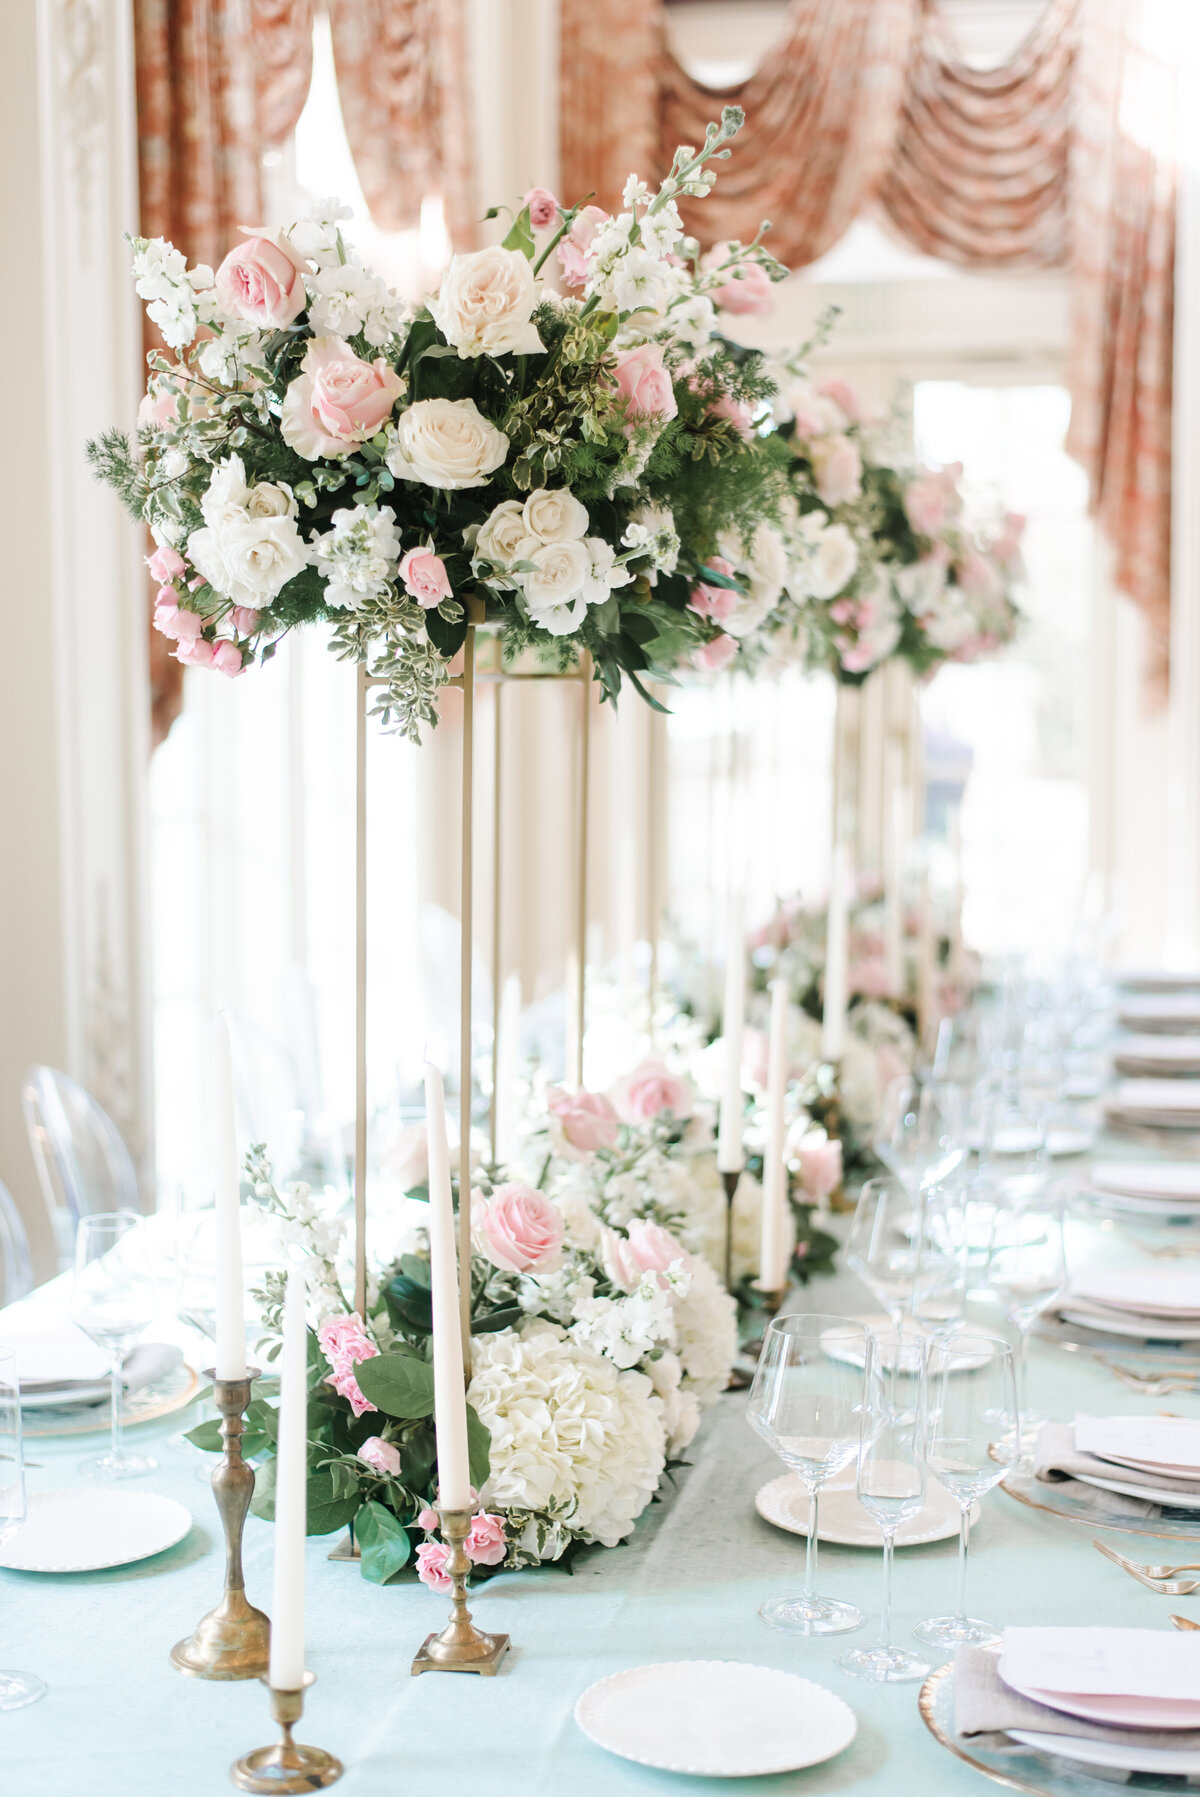 Flowers at a bridal table